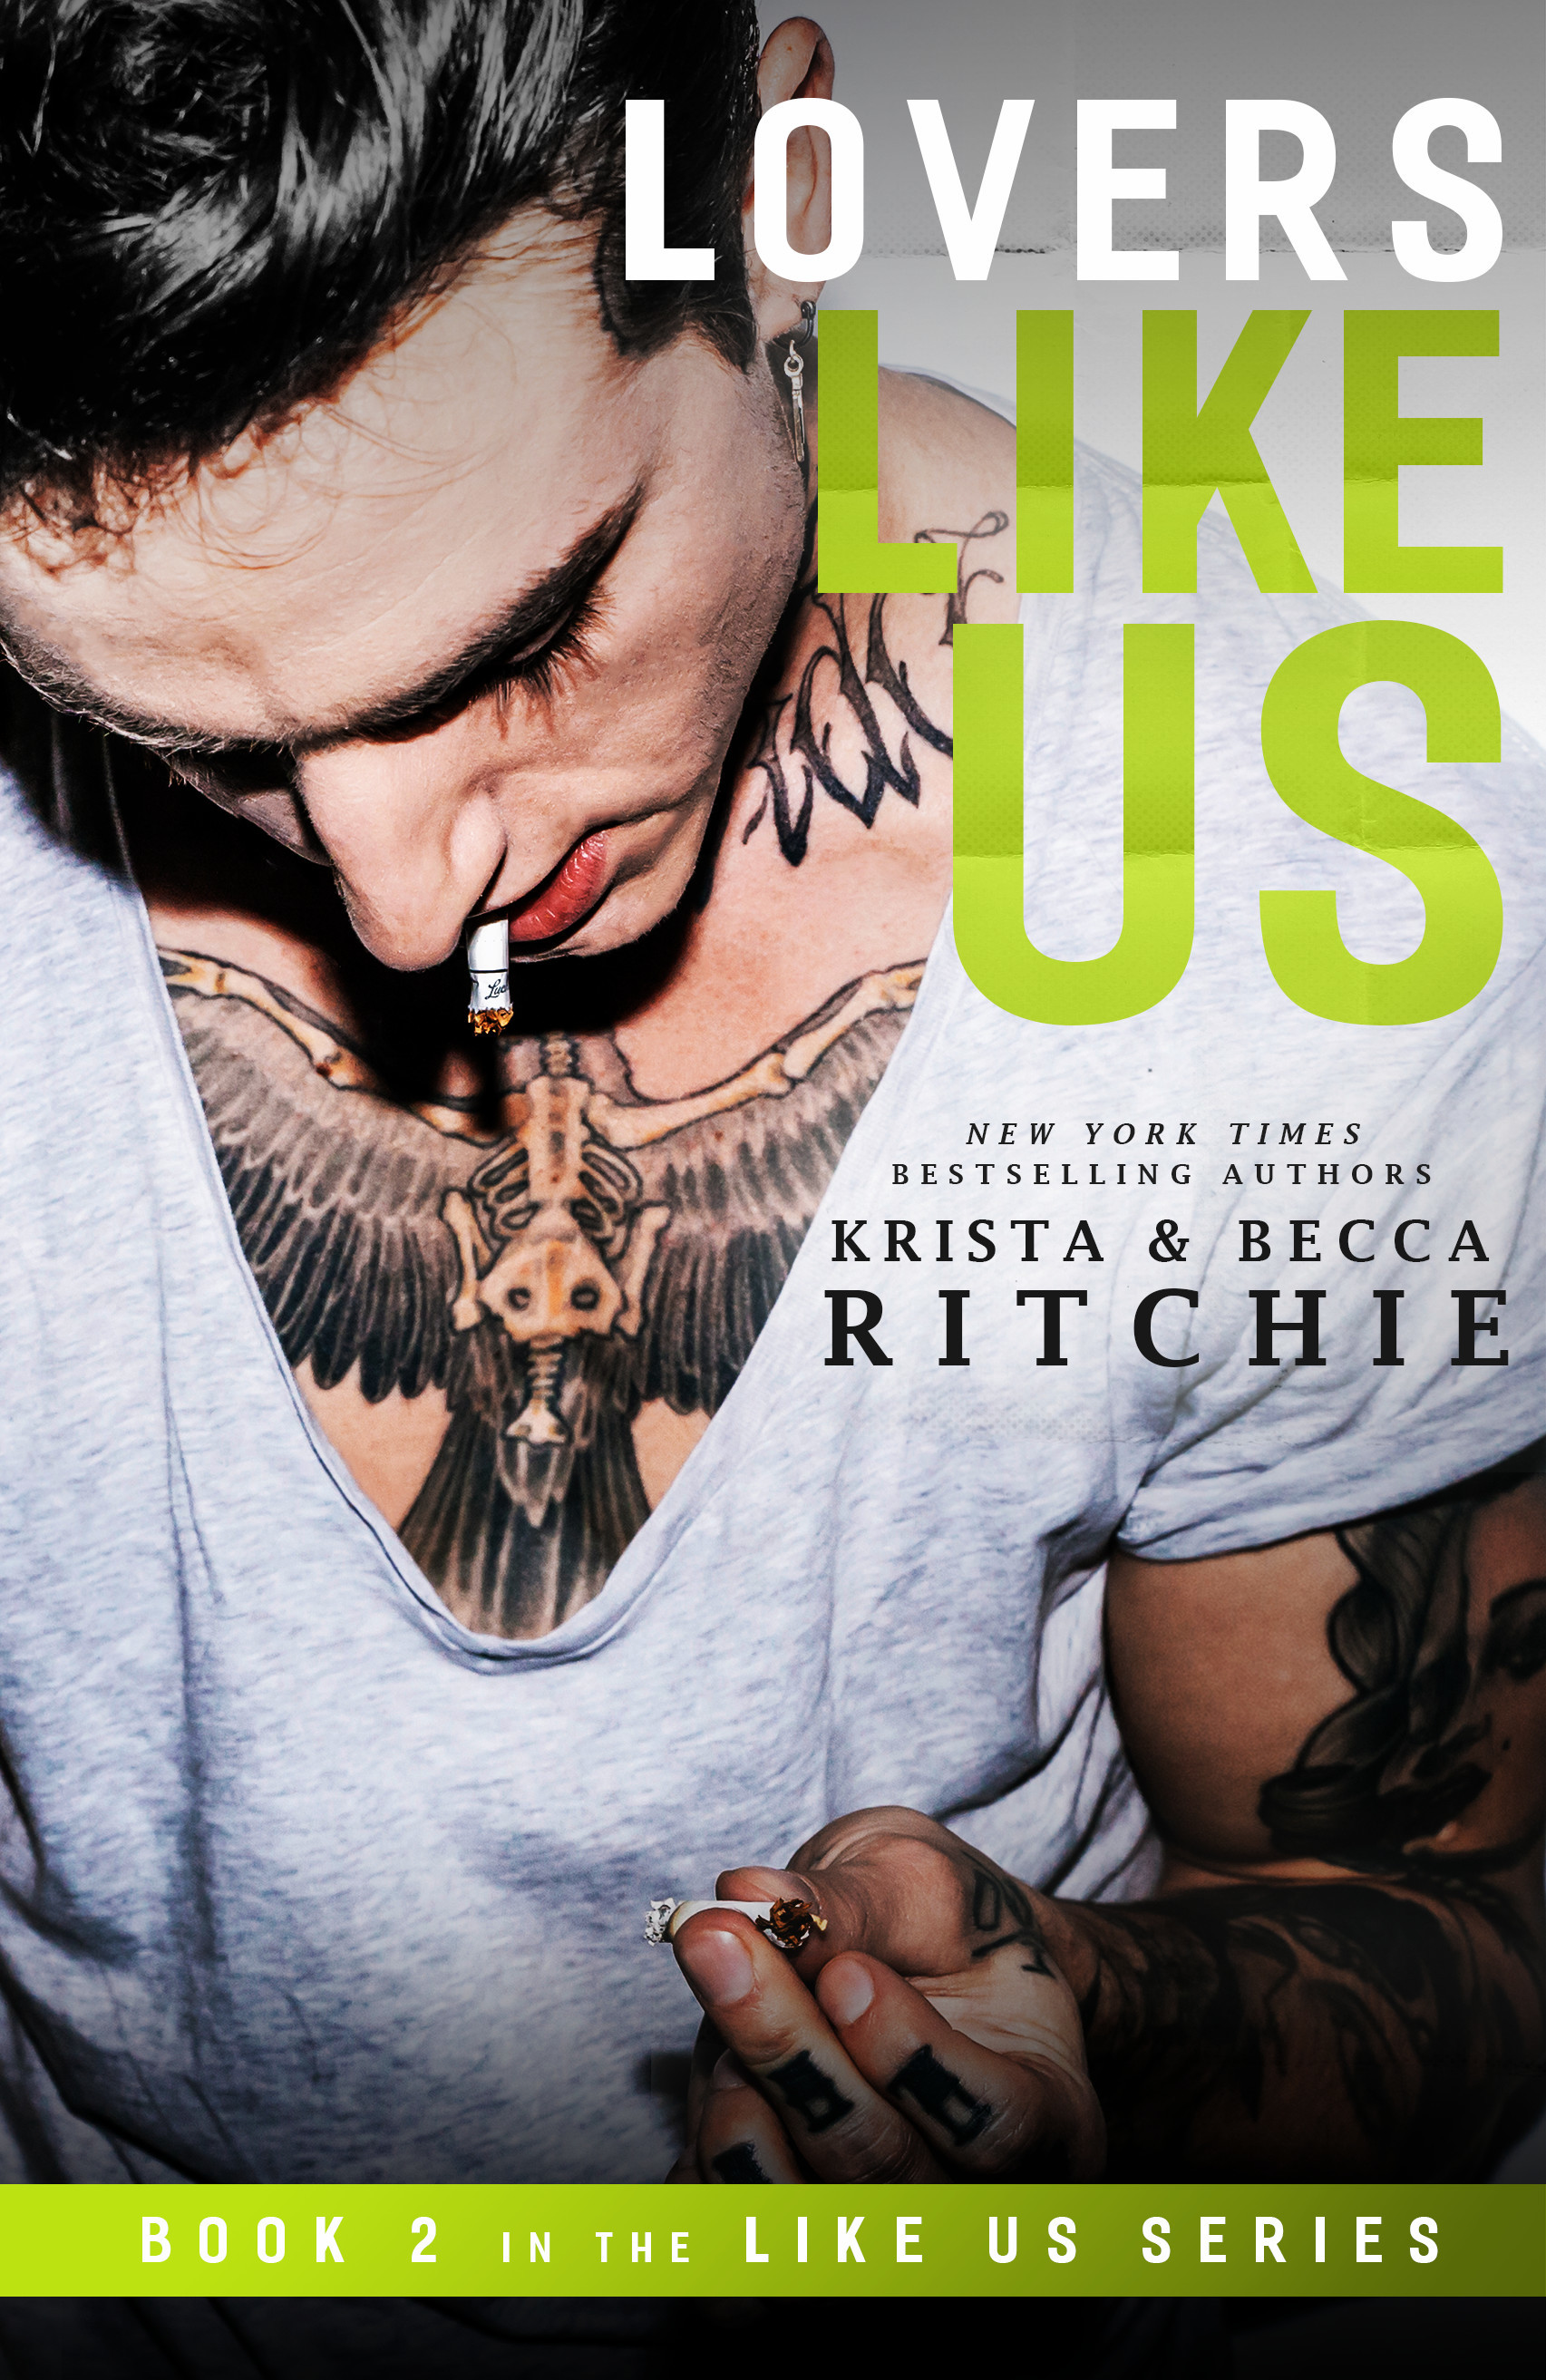 (Like Us 2) Ritchie, Krista  Ritchie, Becca - Lovers Like Us